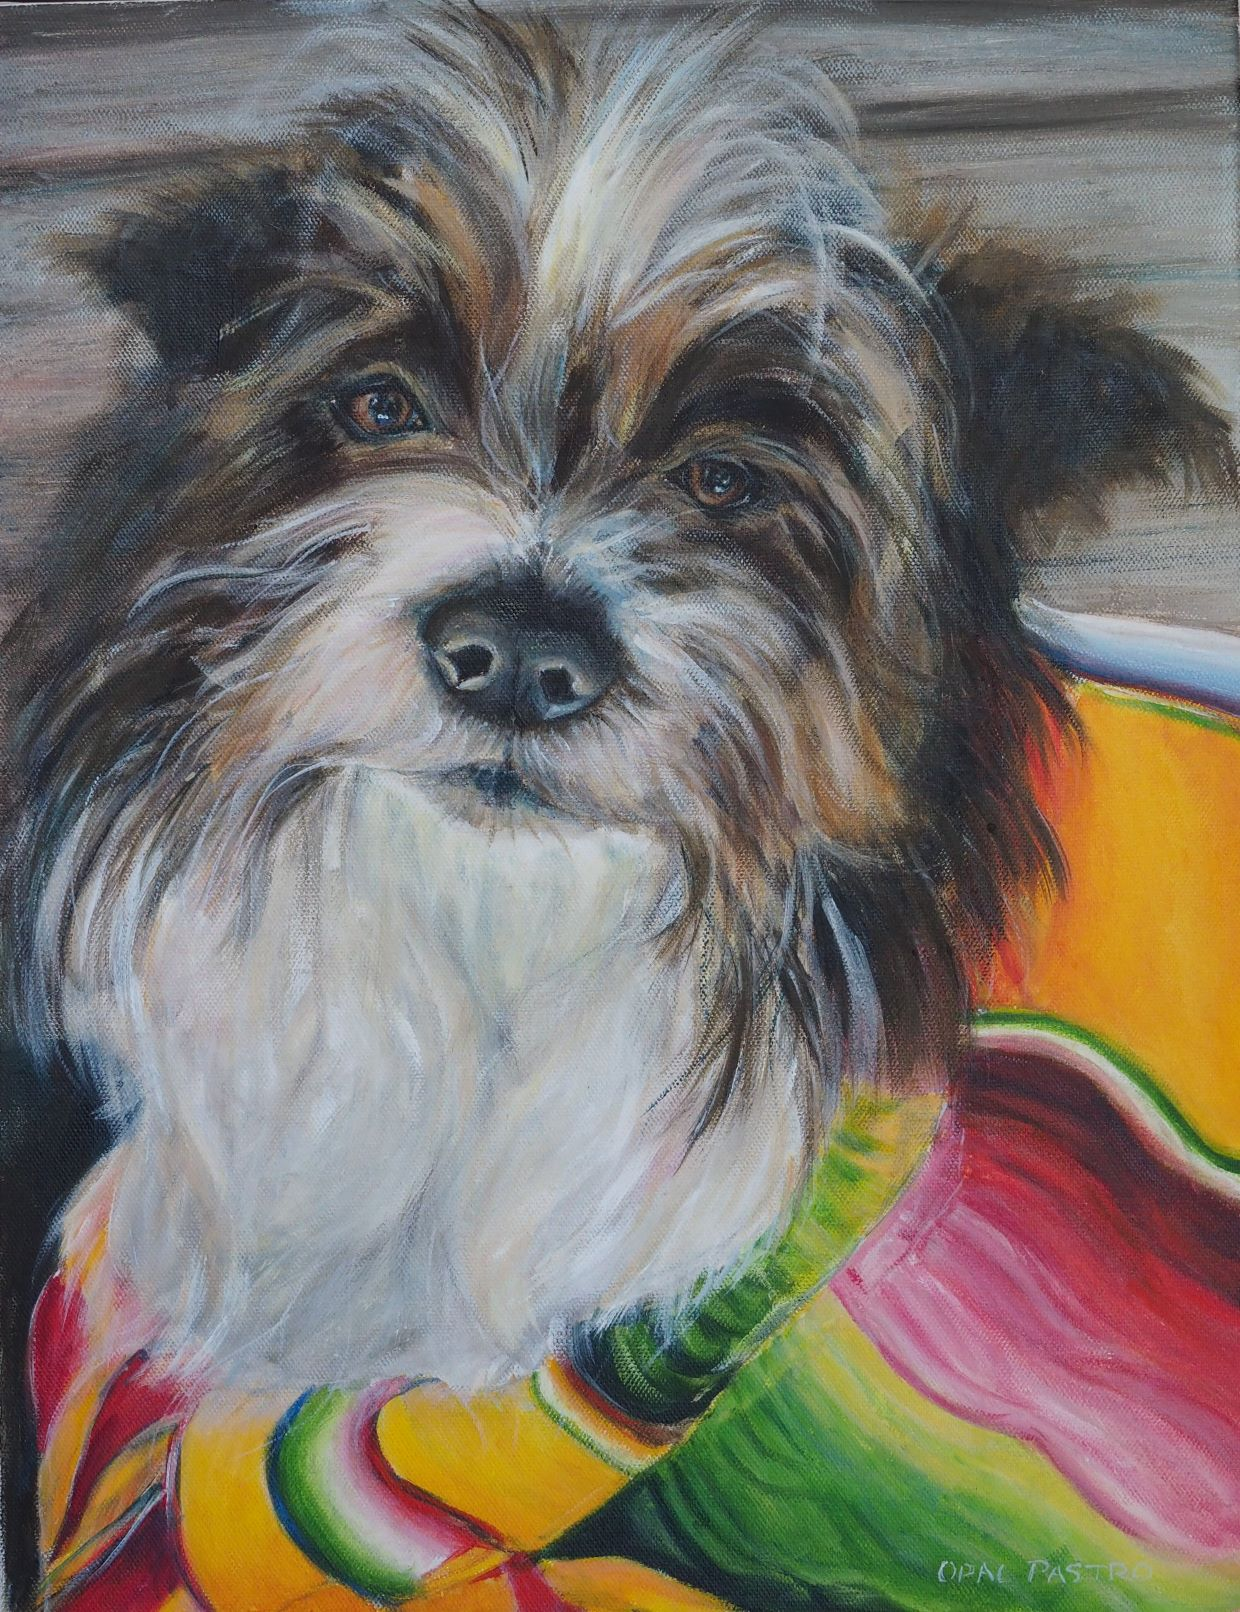 - Poppy was her mum's special little friend. Her memorial portrait is helping to keep her memory alive.